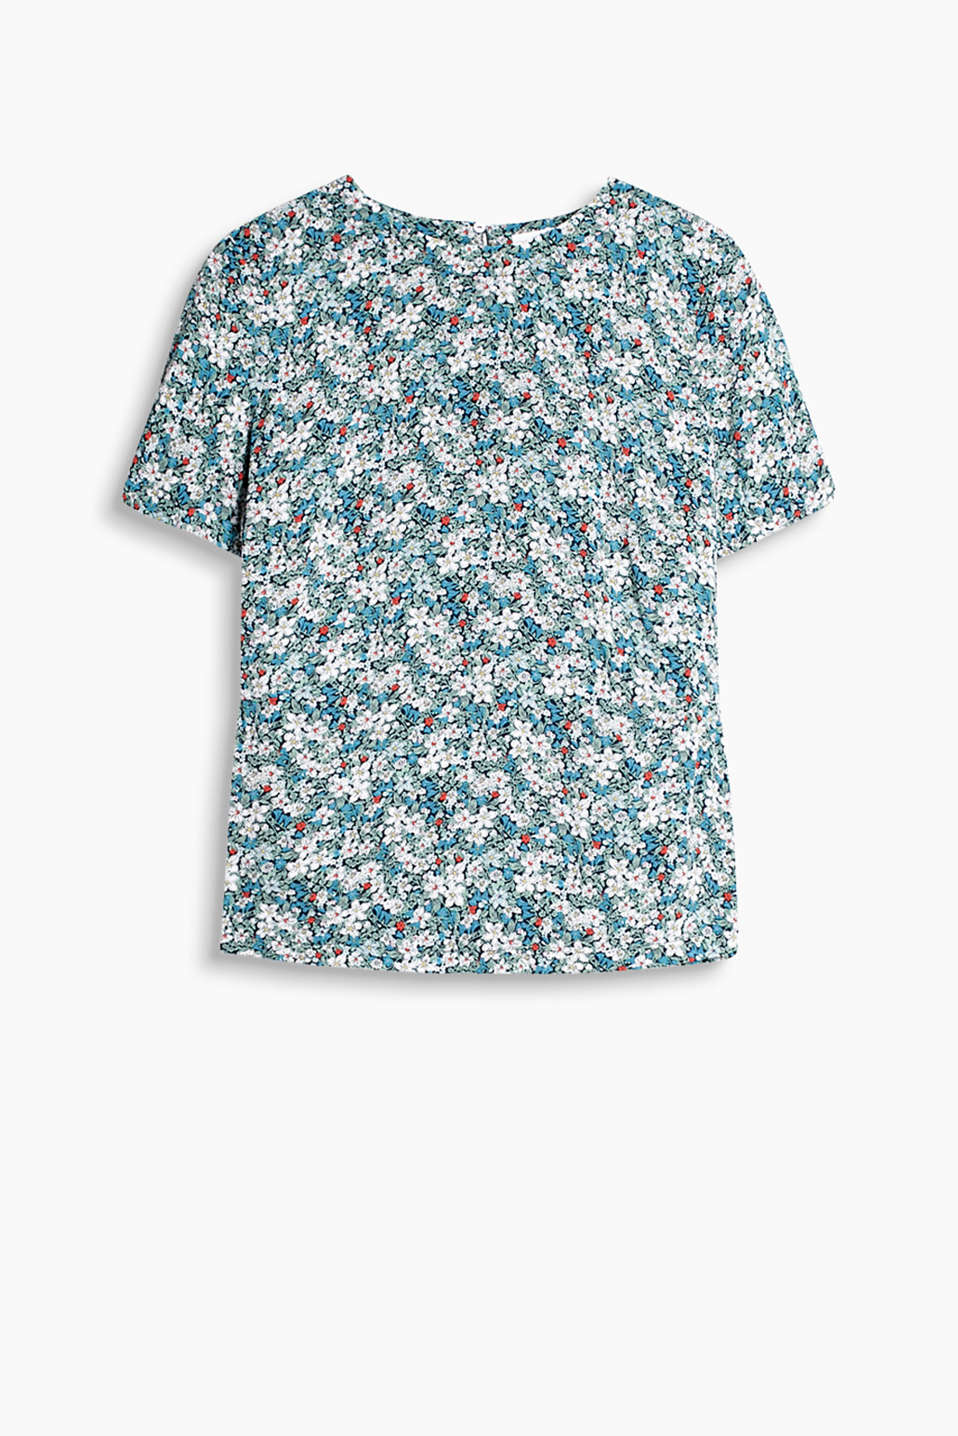 Printed with an abundance of summery flowers: blouse in a short sleeve T-shirt design